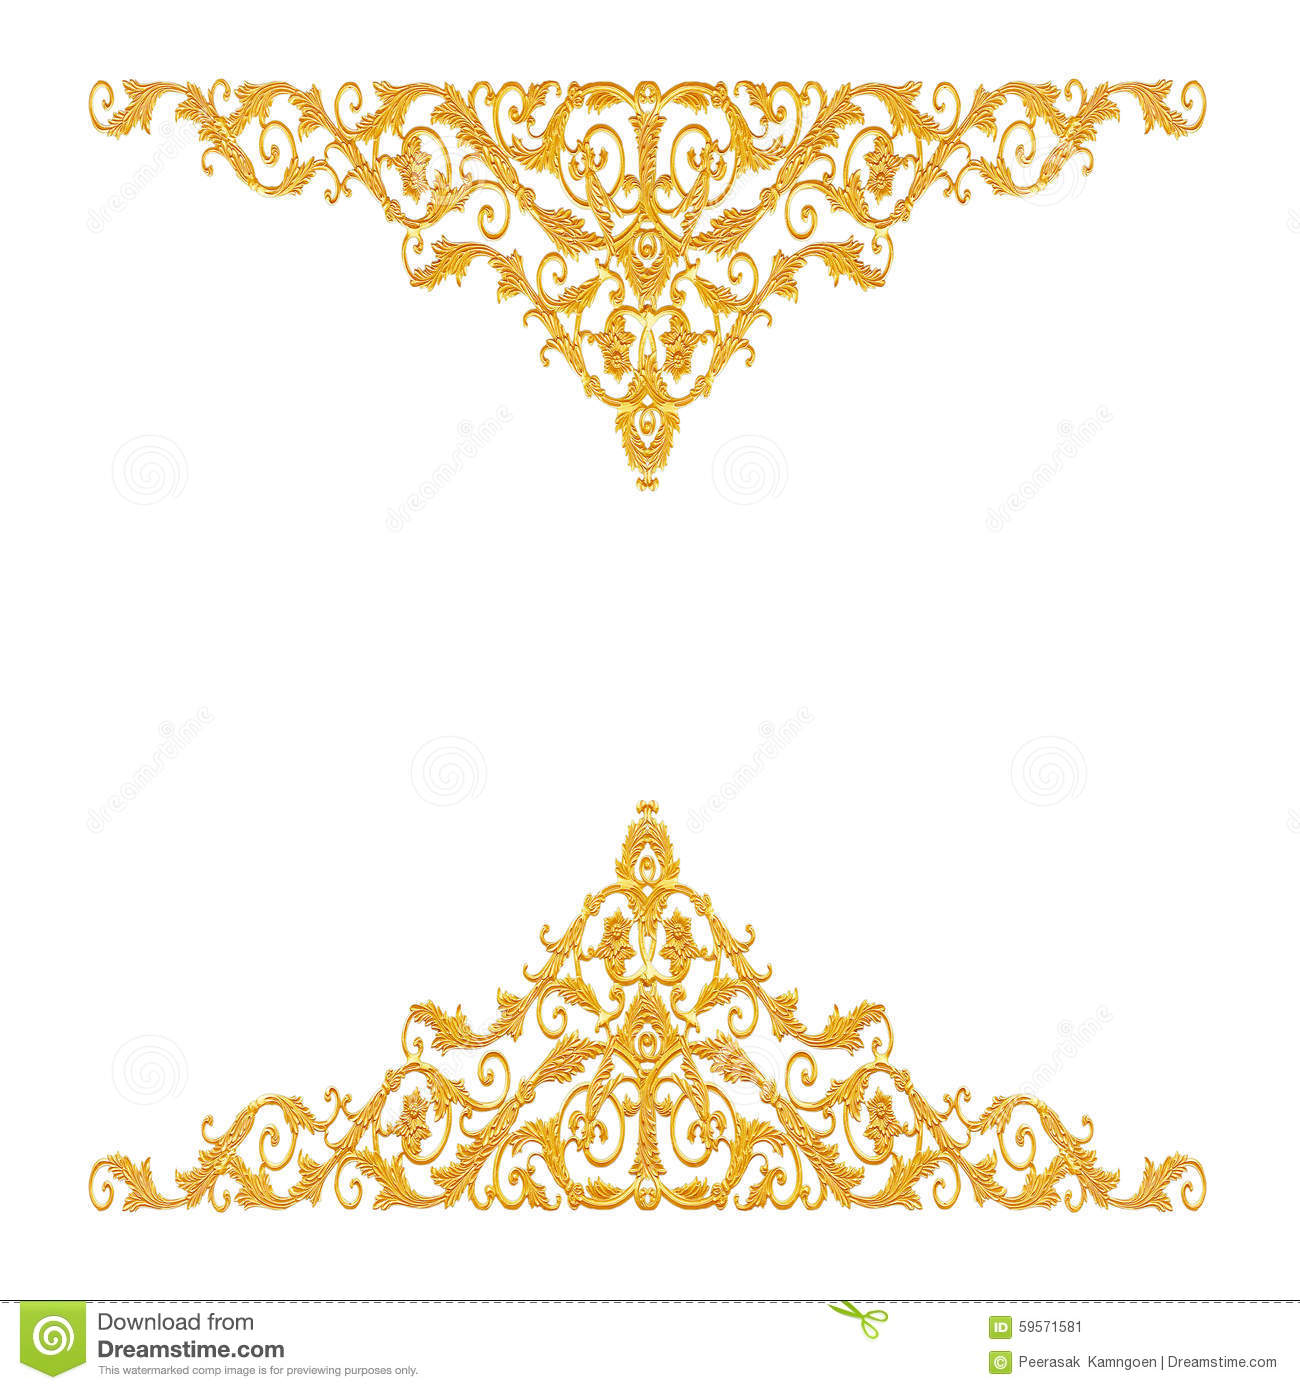 Download free vintage ornaments vintage ornaments and iders - Royalty Free Stock Photo Download Ornament Elements Vintage Gold Floral Designs